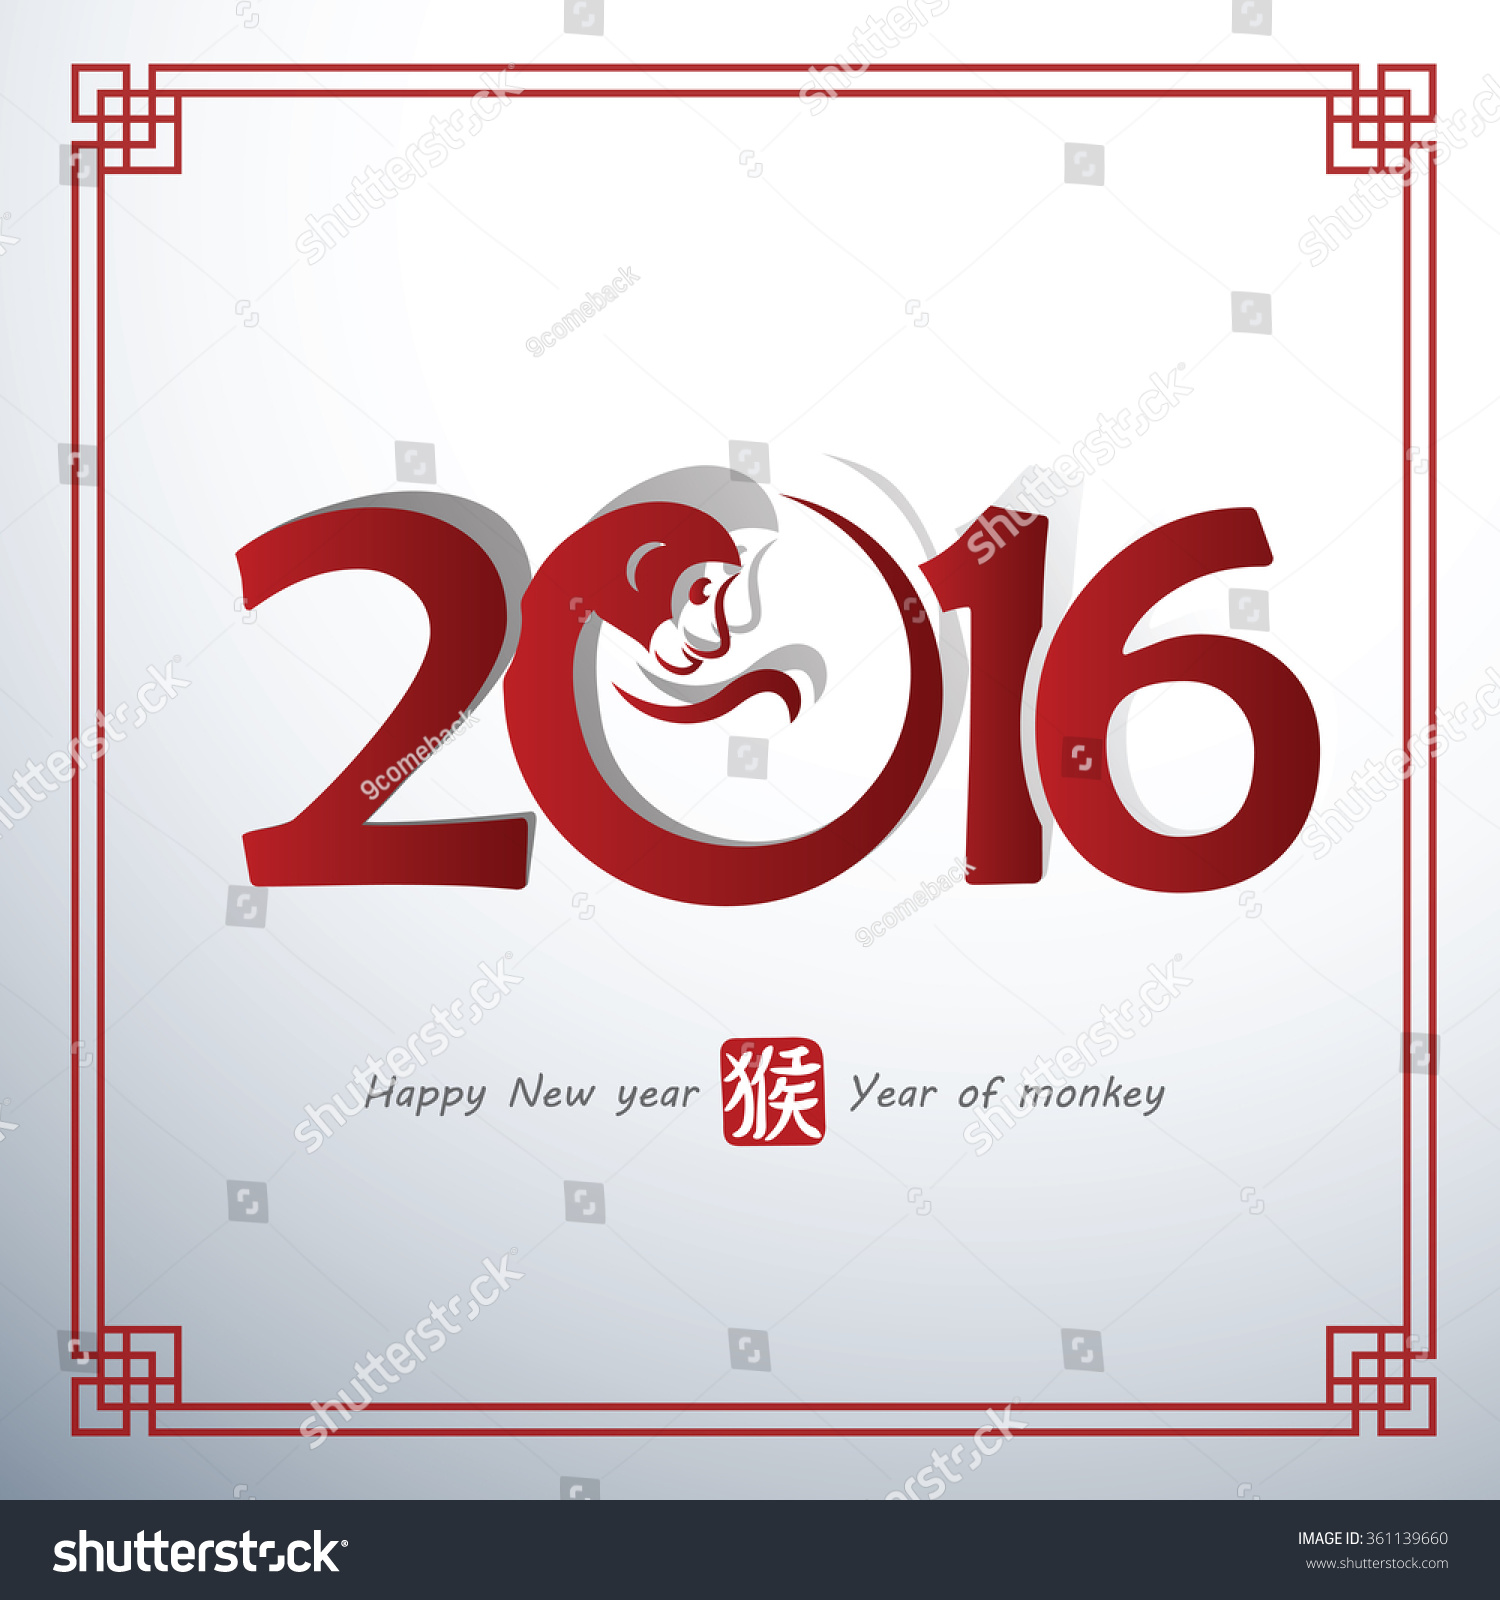 Chinese Calendar Illustration : Chinese new year vector illustration stock